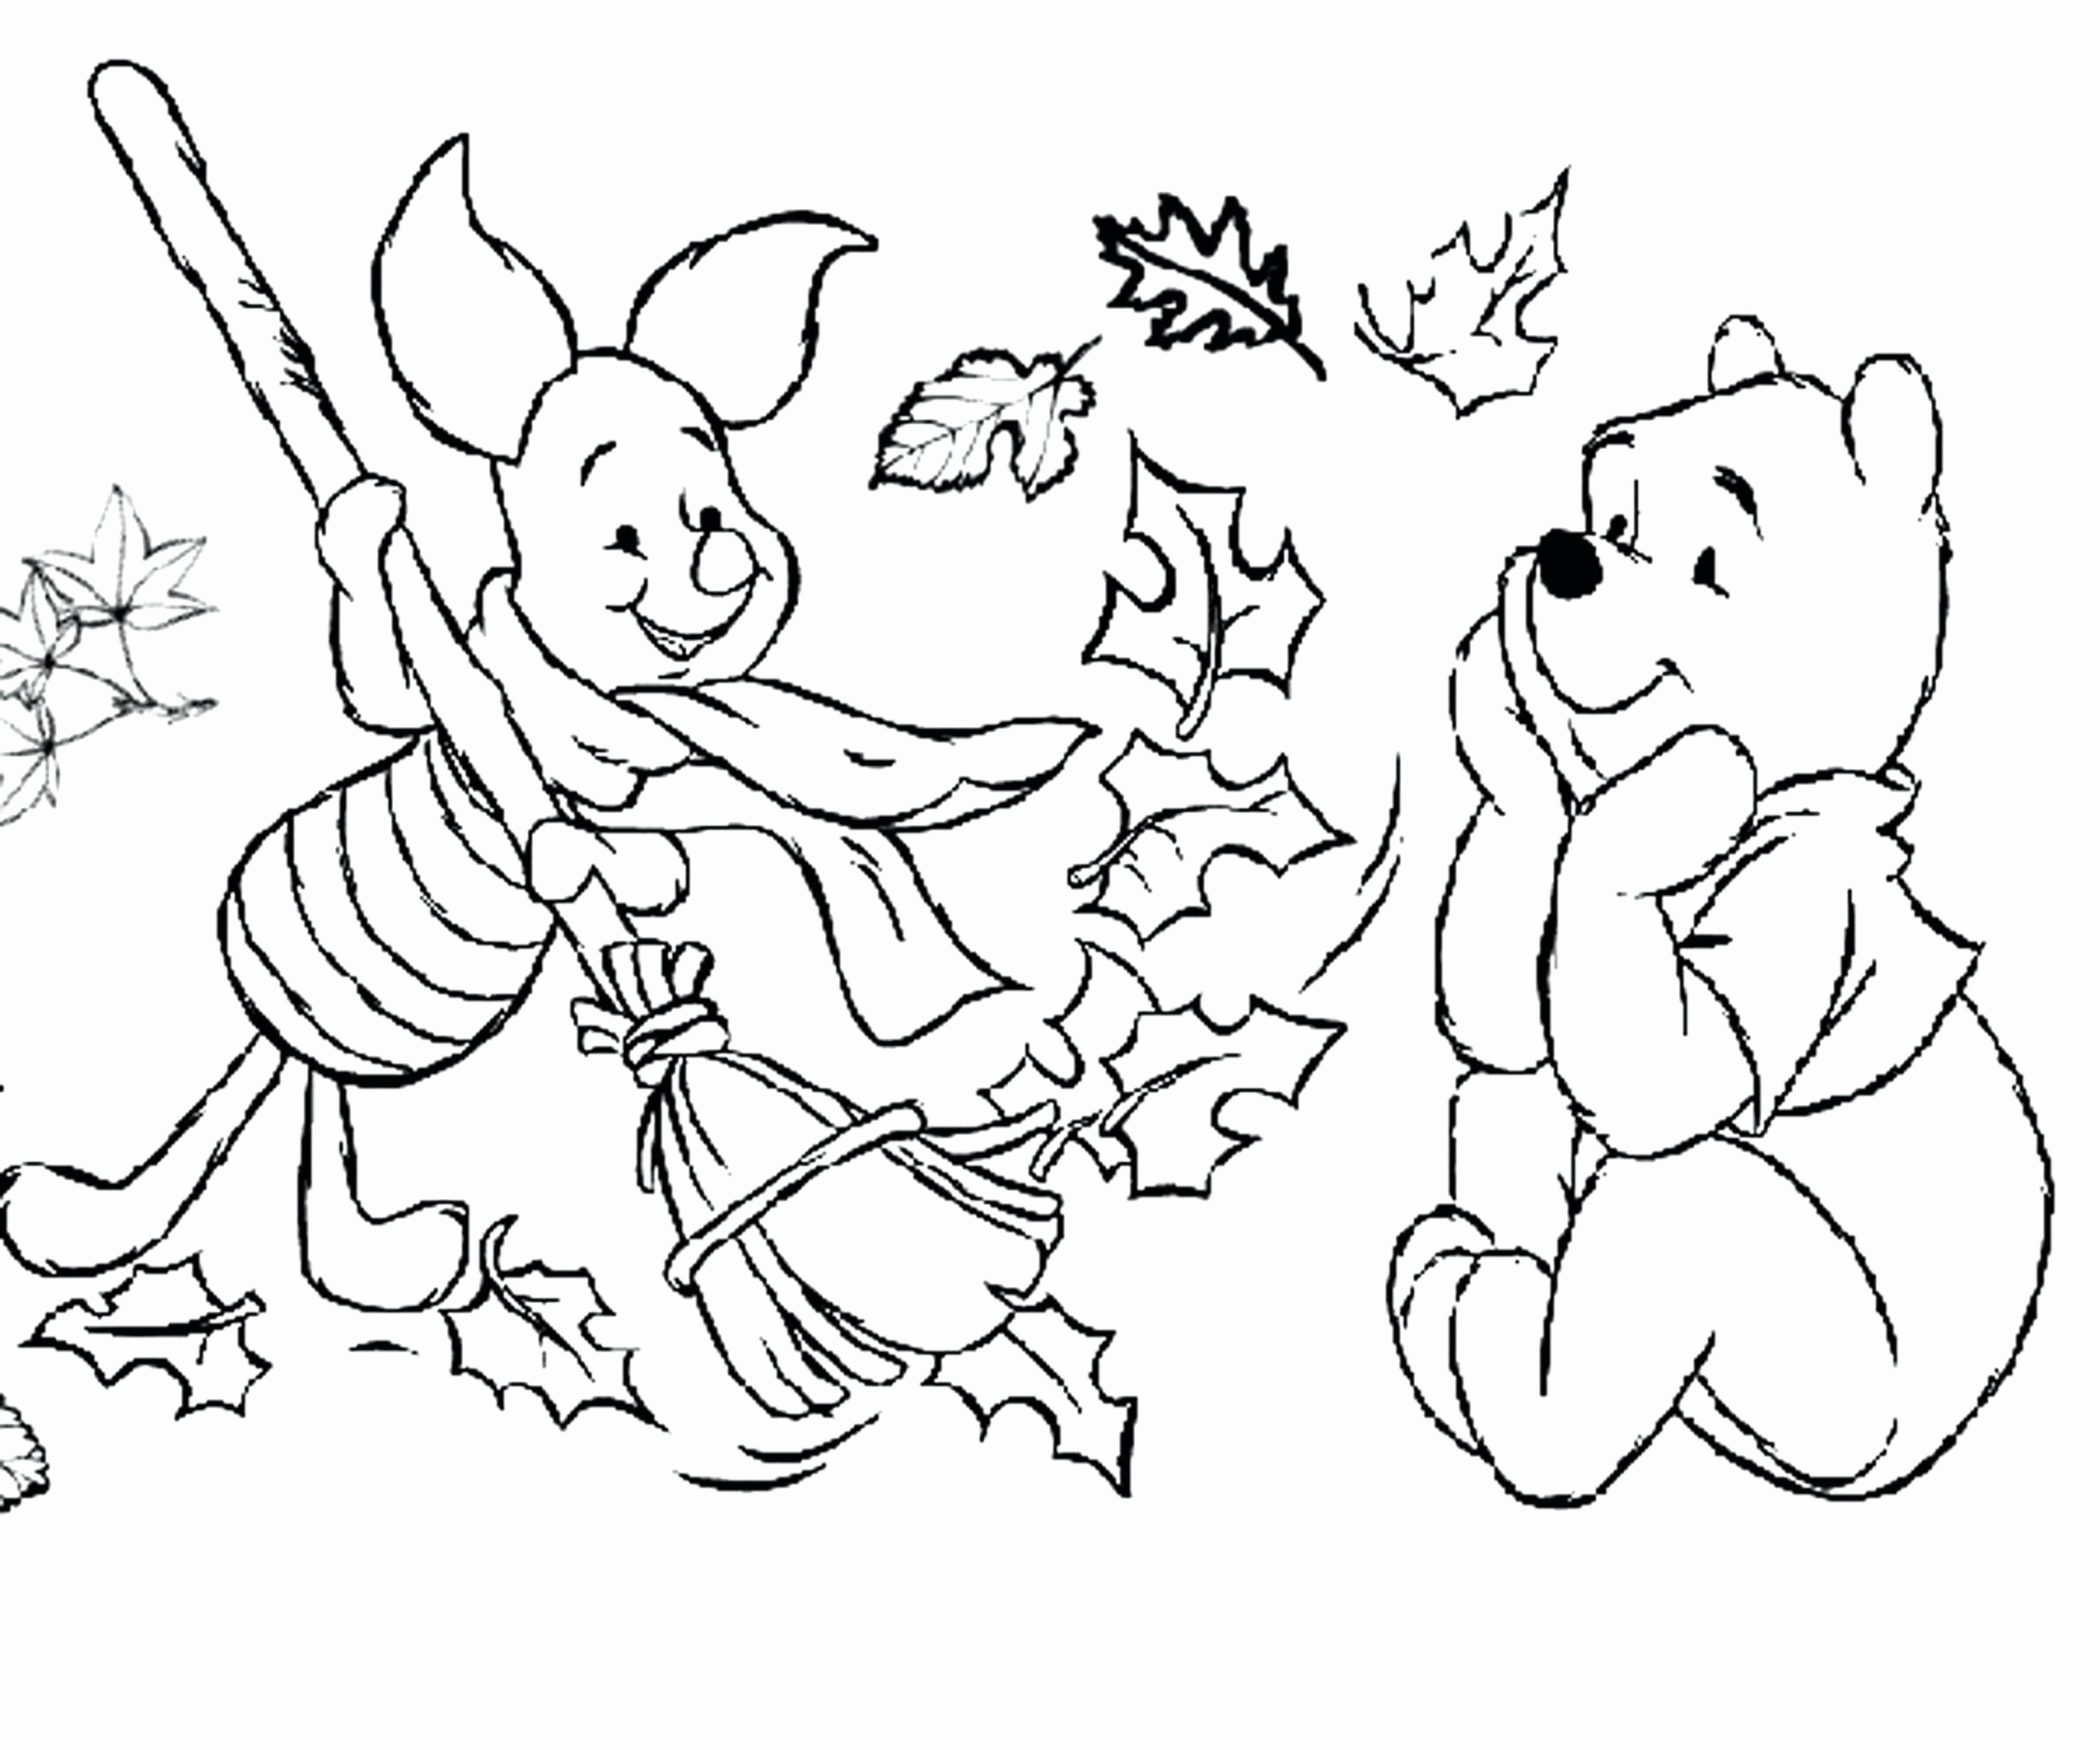 Library Coloring Pages  Printable 15t - To print for your project